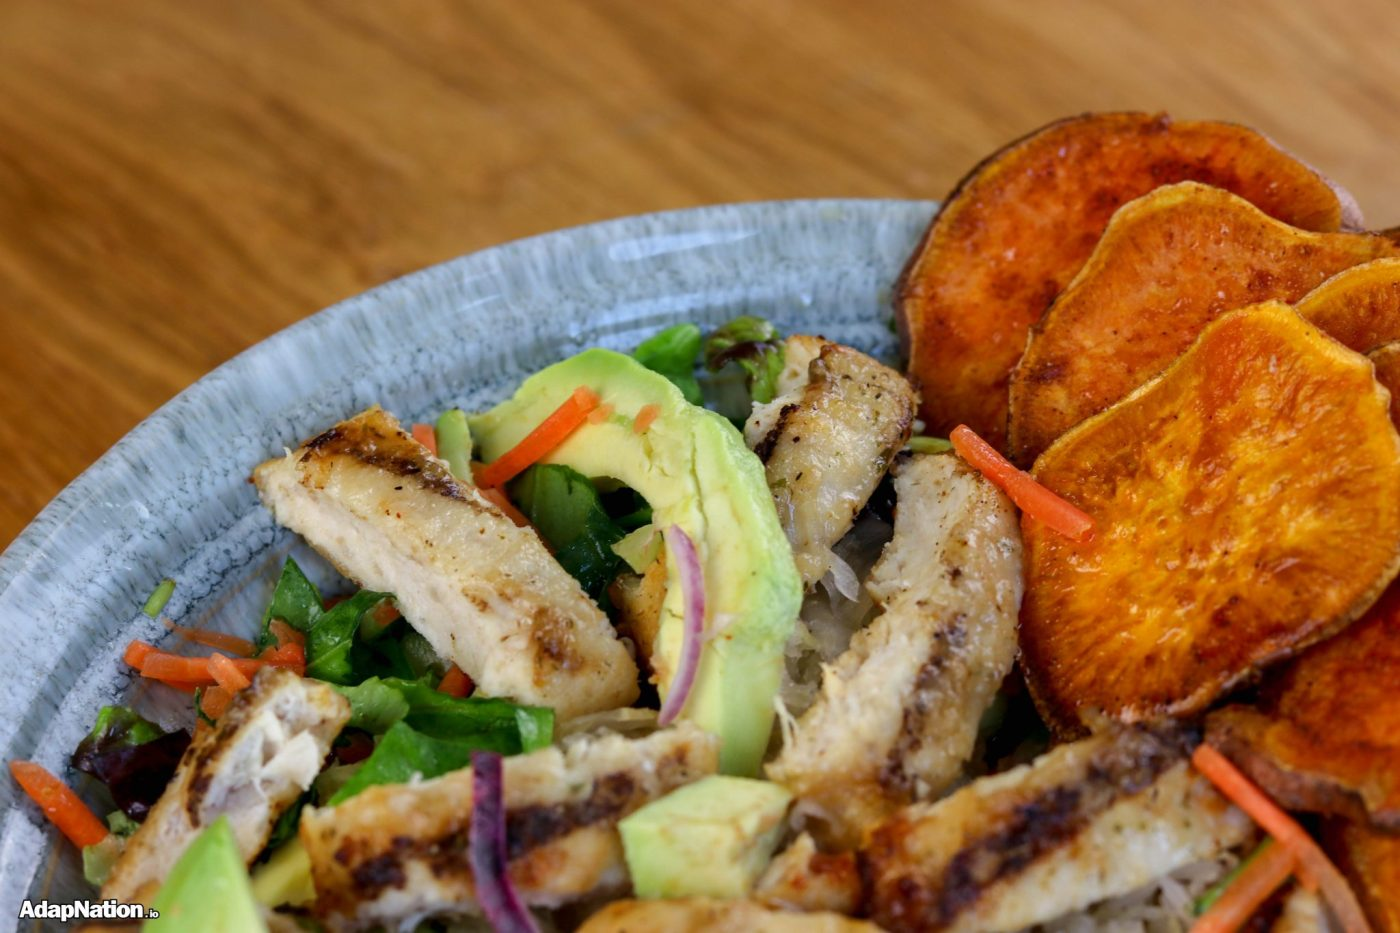 Chicken & Avo Salad with SP Crisps